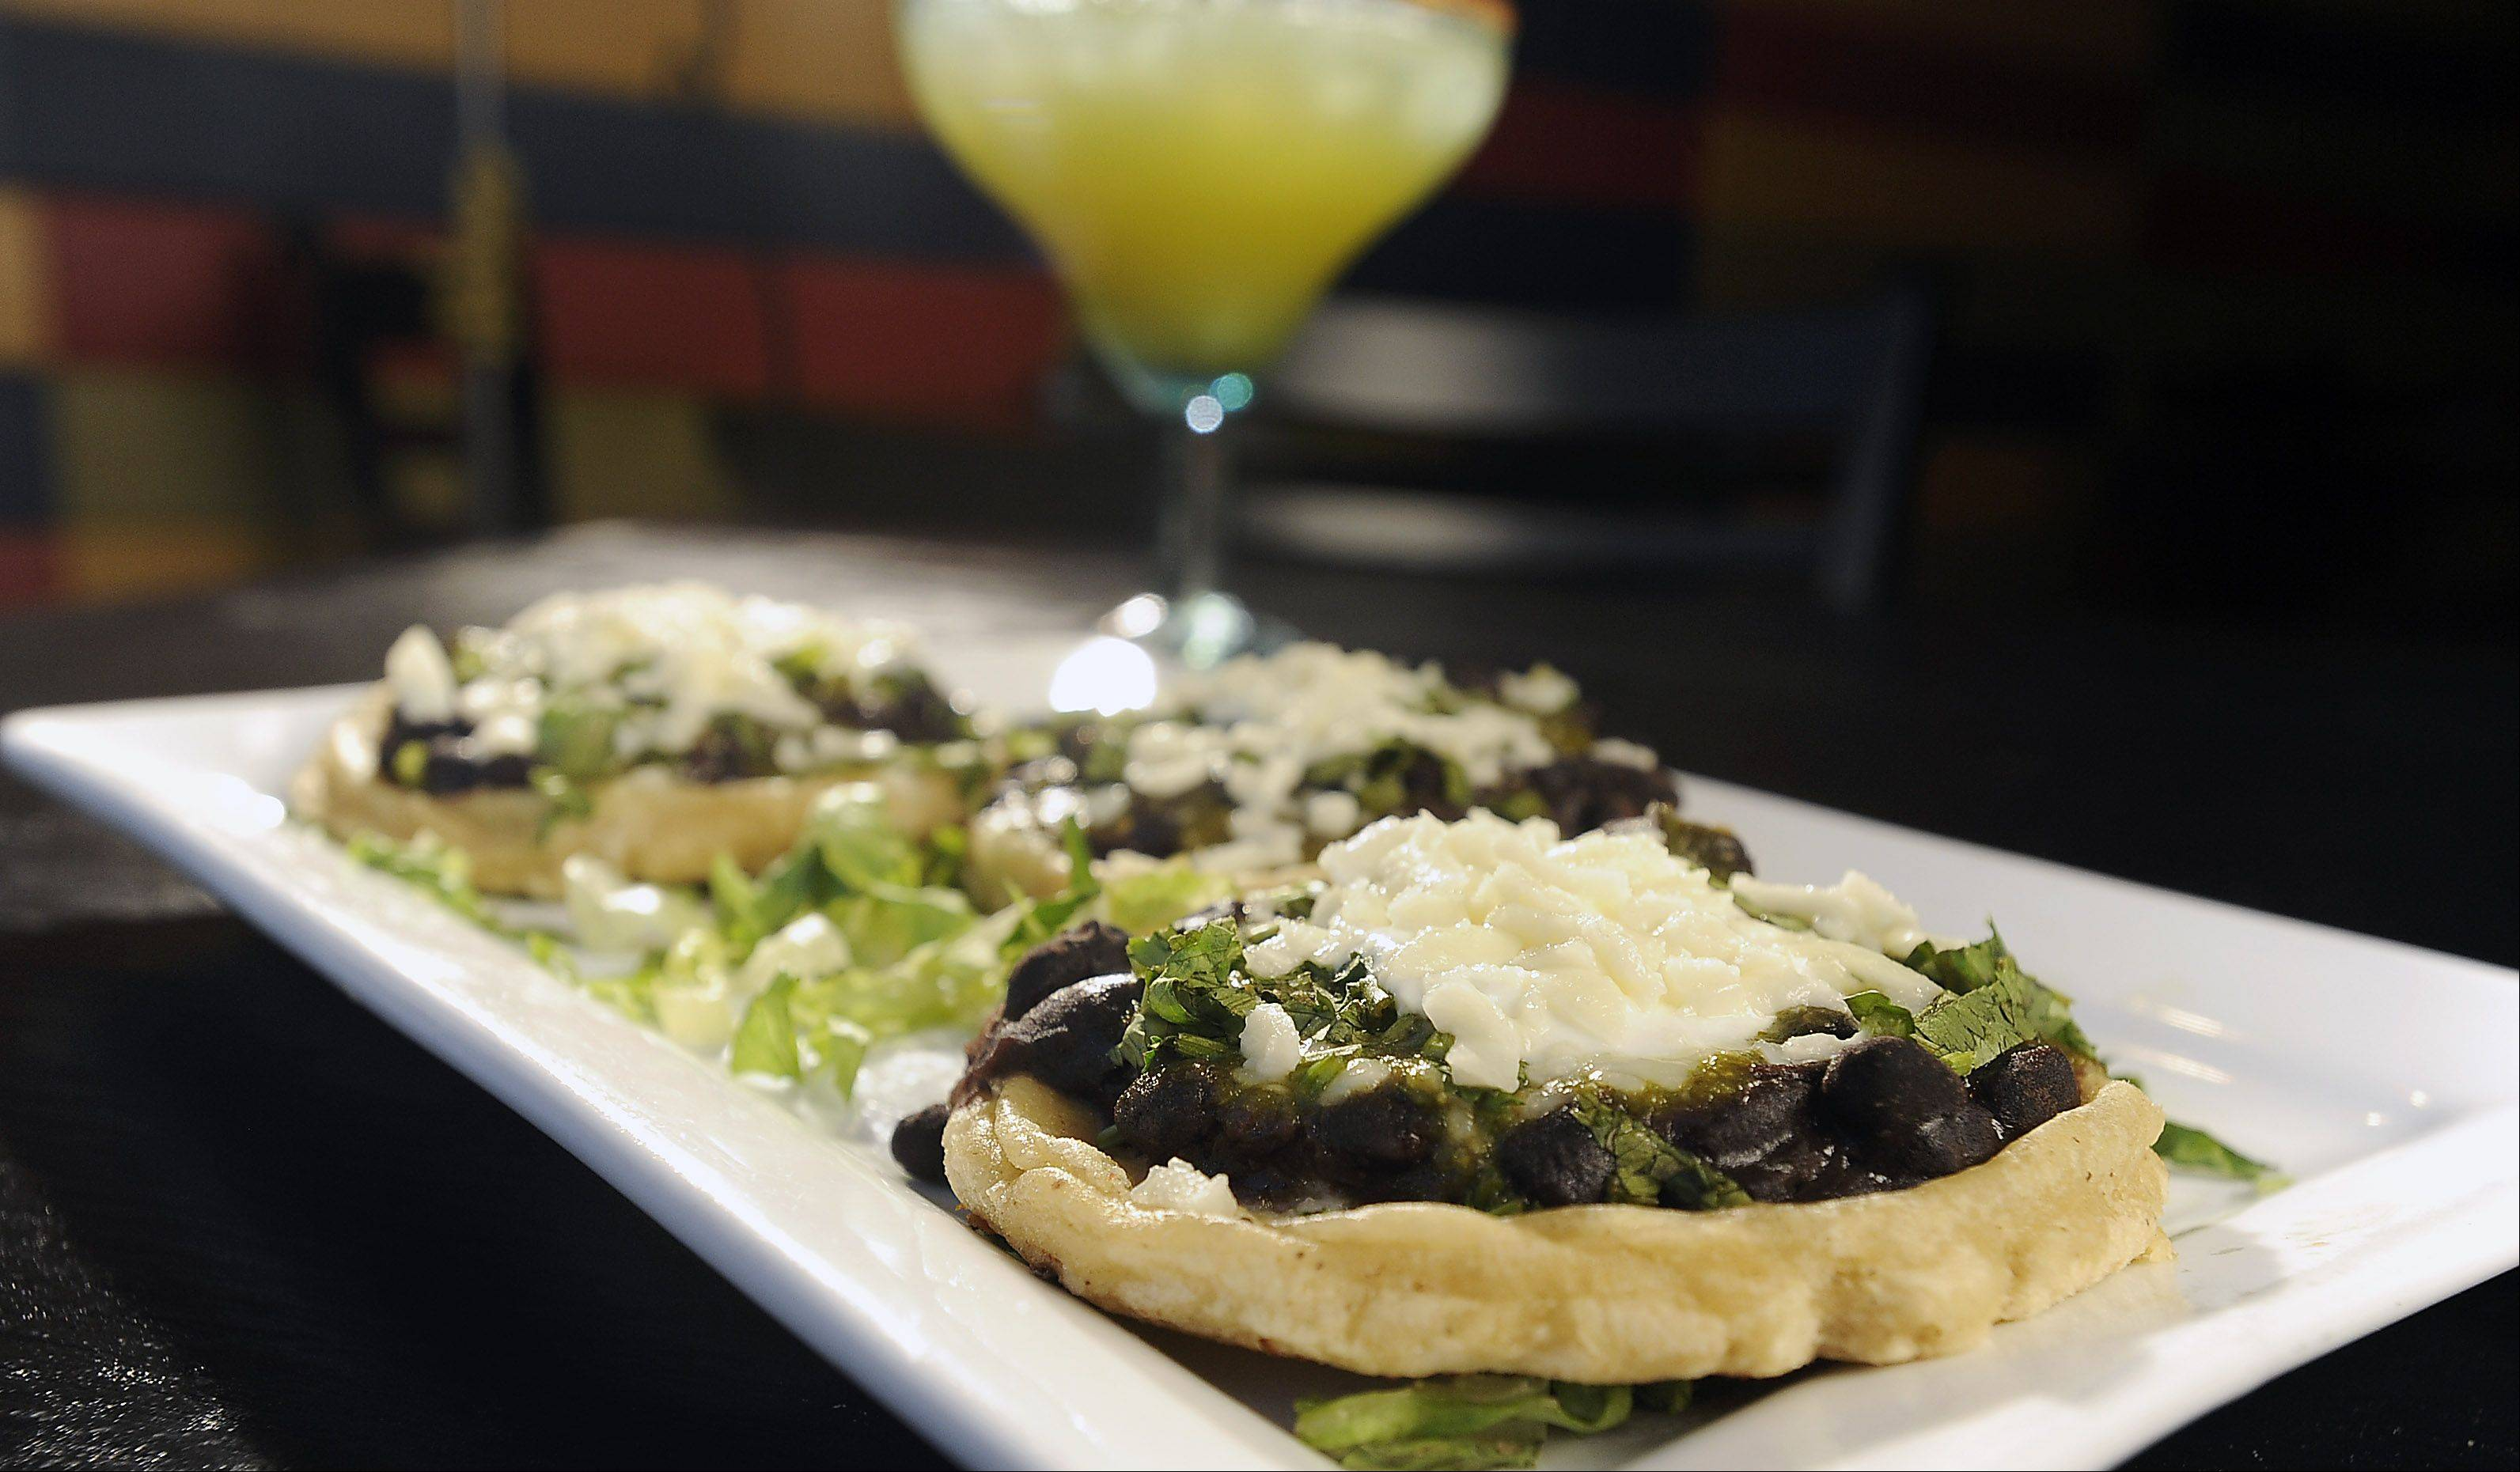 Handmade to order, Mia's Cantina's corn masa boats called sopes get topped with black beans and cilantro, onions and sour cream.